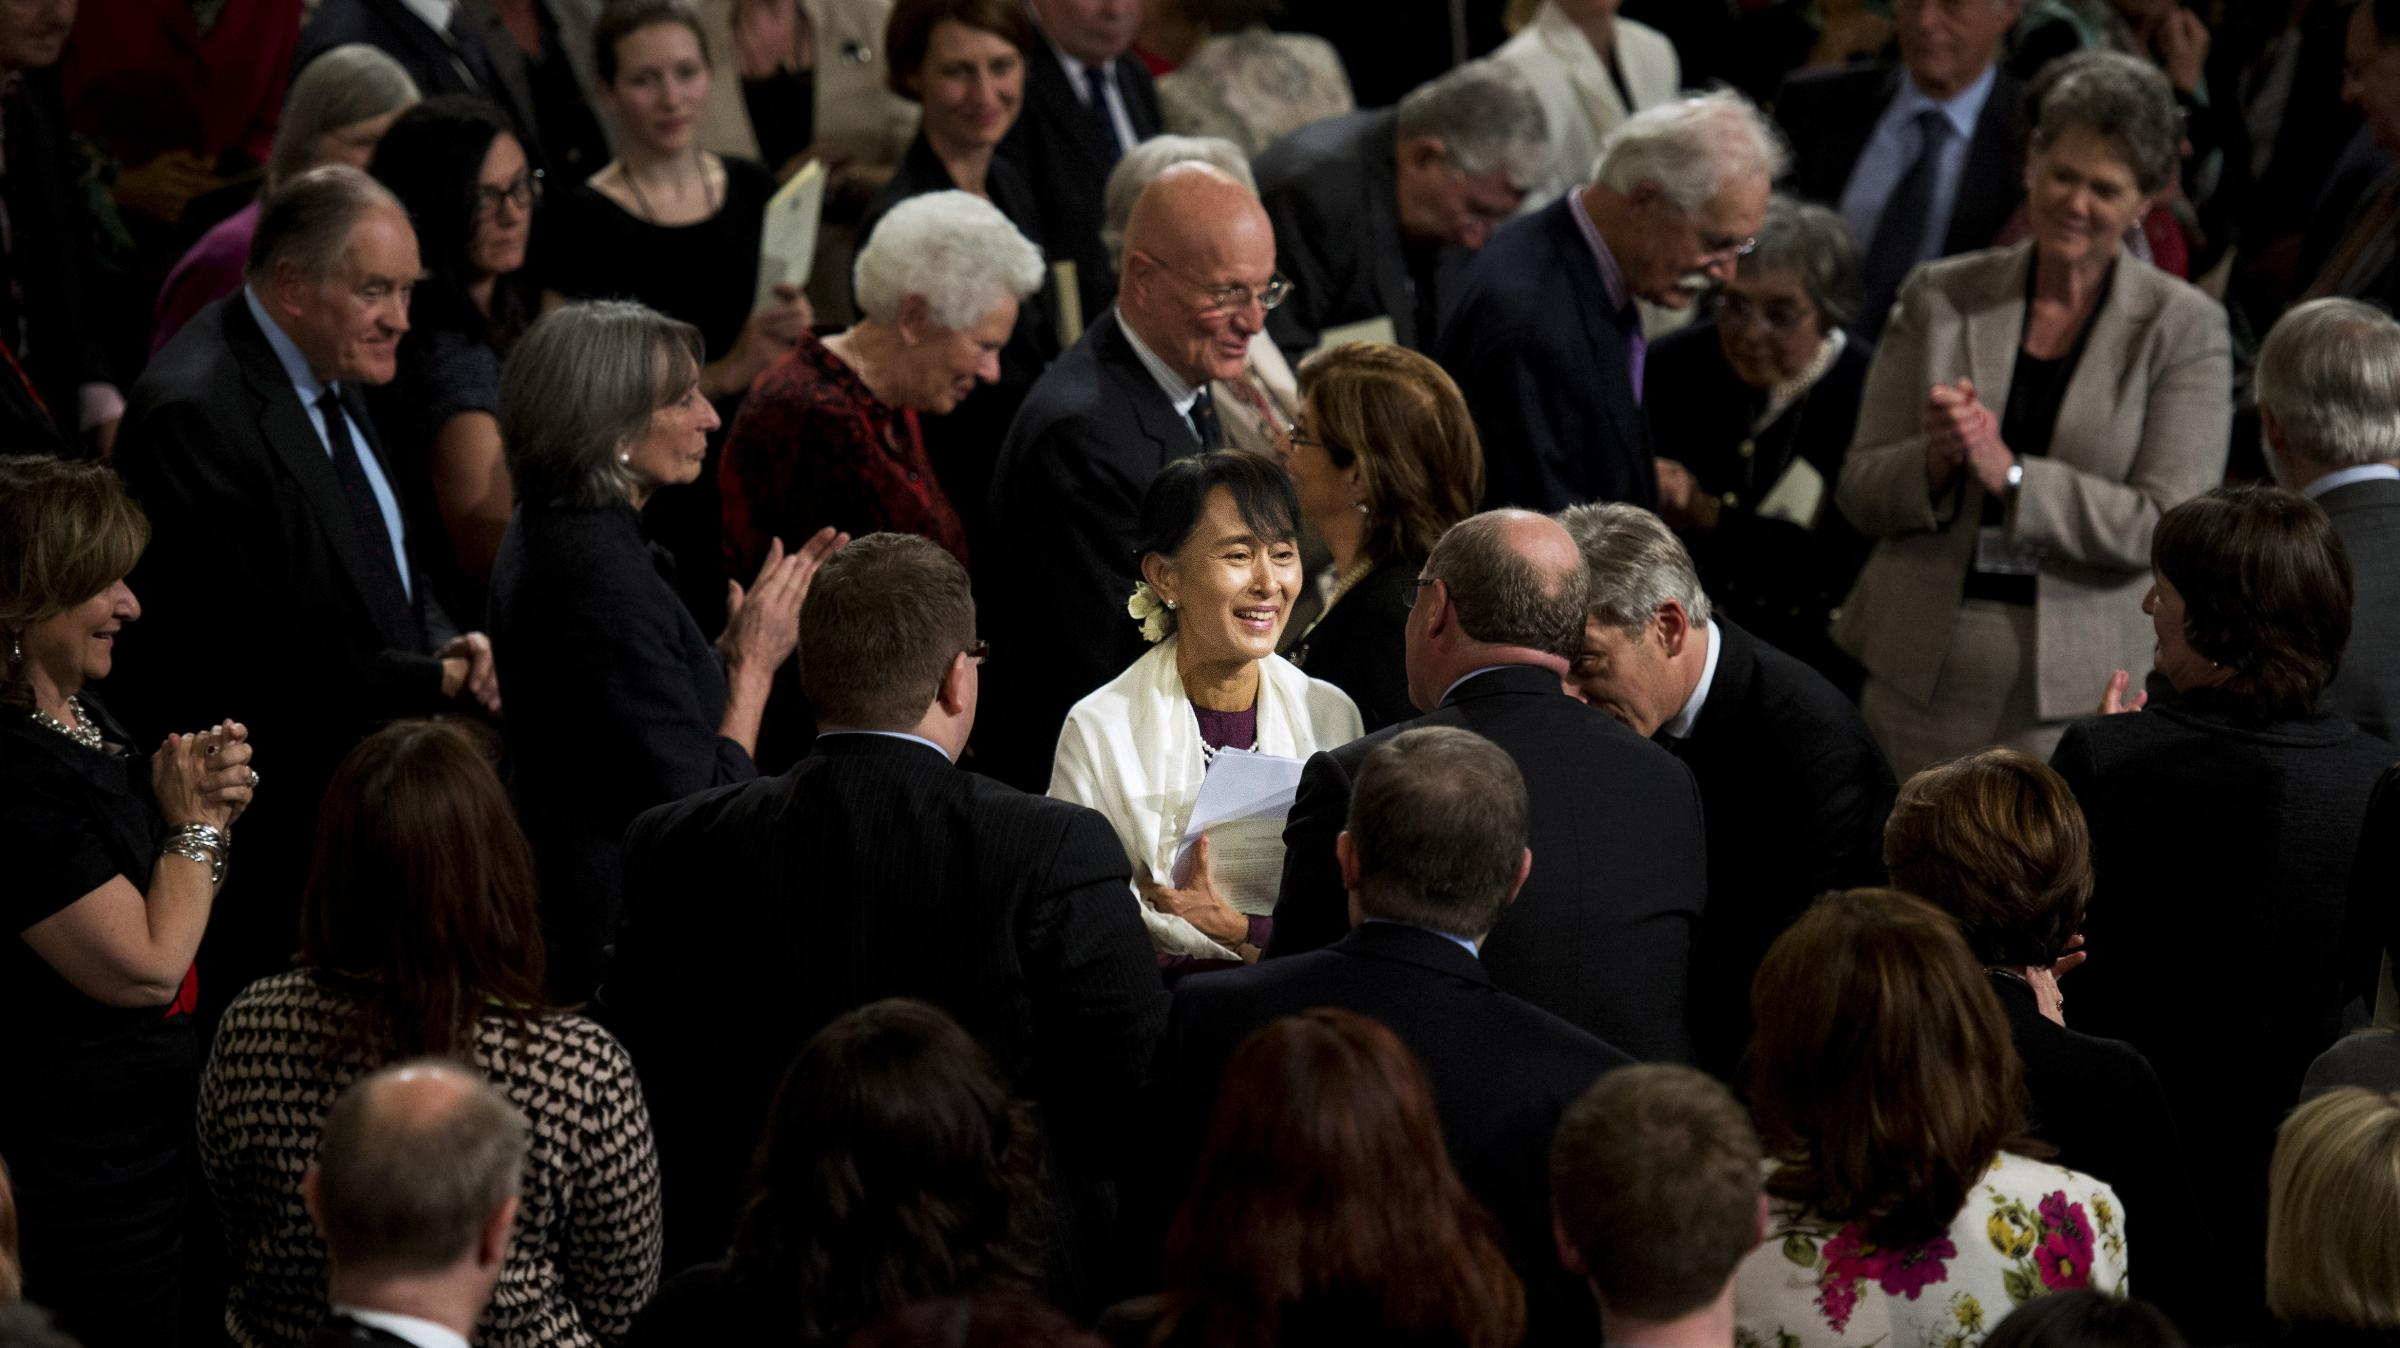 Nobel Winner Suu Kyi to Be Stripped of Freedom of Edinburgh Award